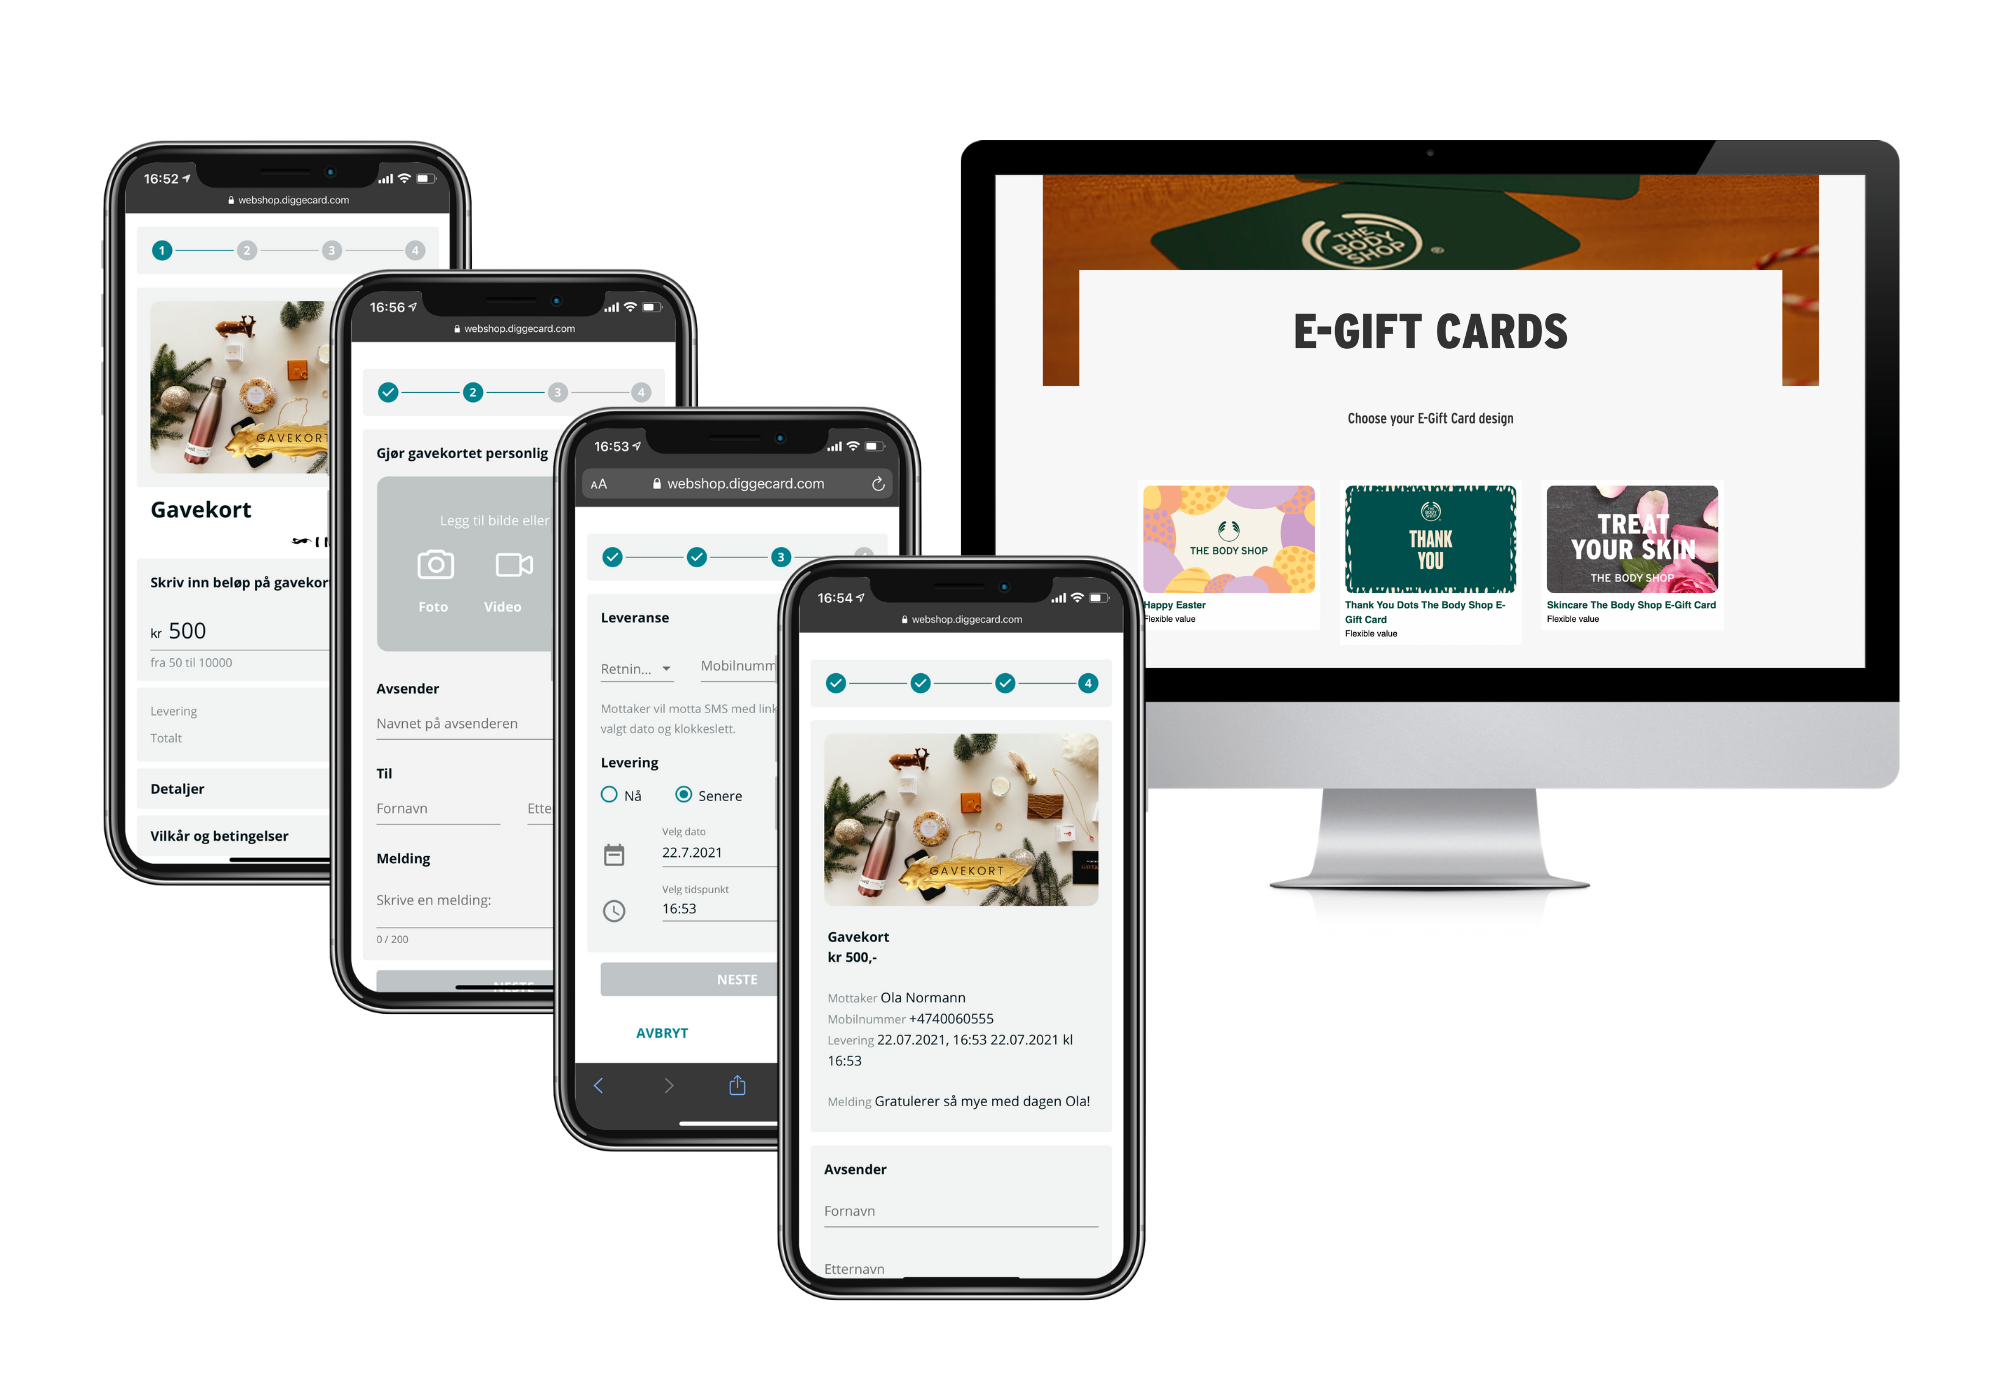 Illustration of gift cards